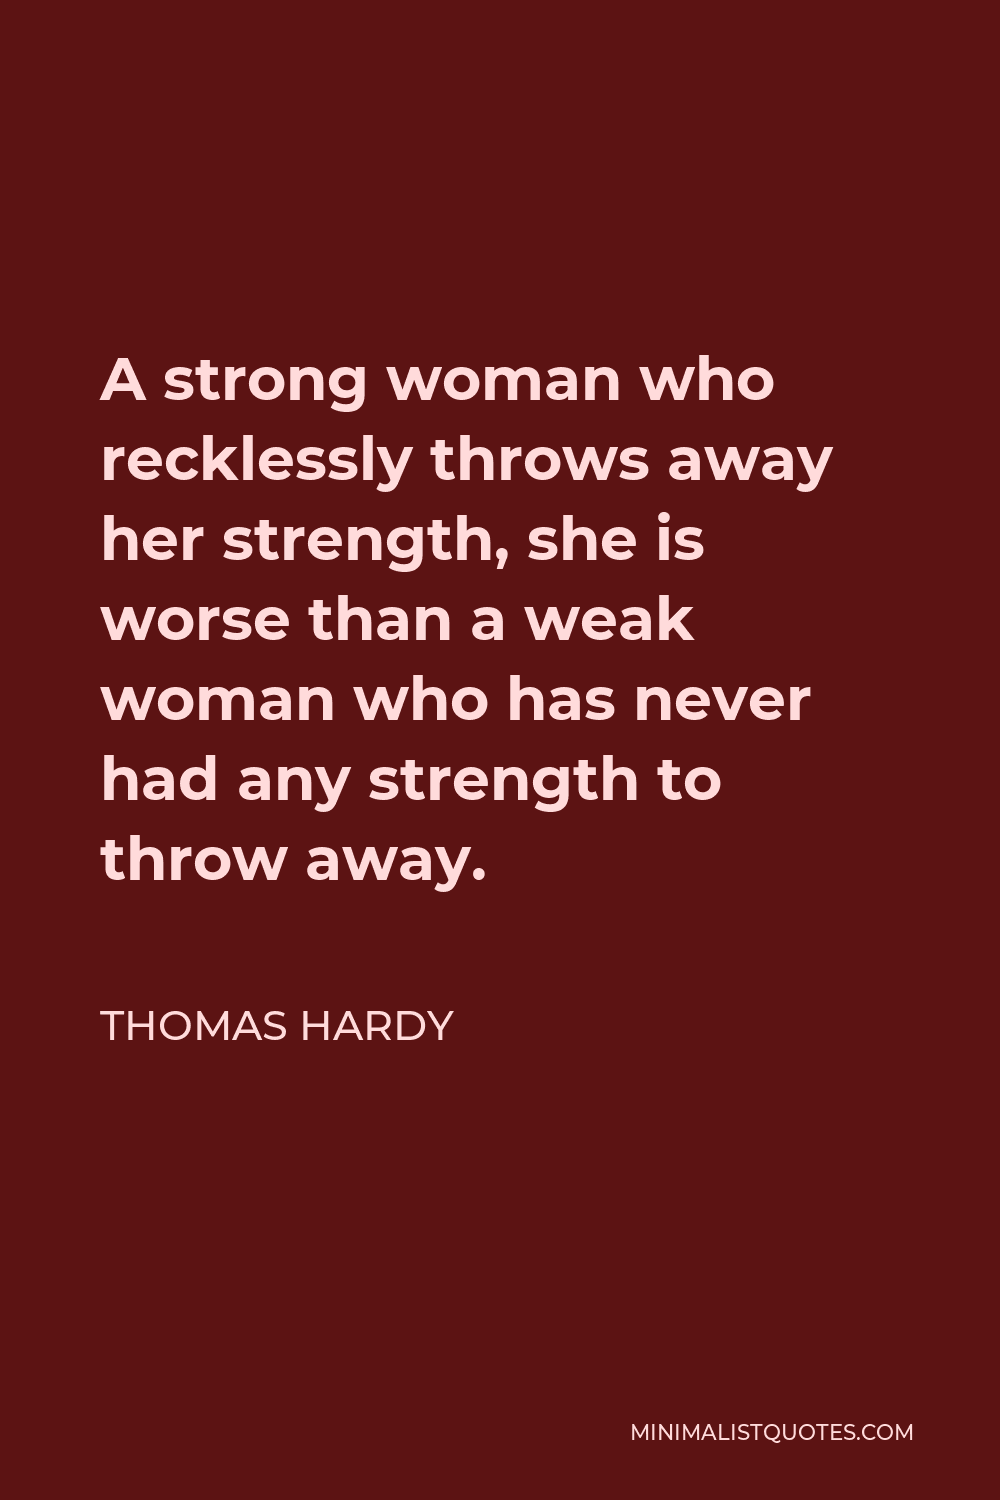 Thomas Hardy Quote - A strong woman who recklessly throws away her strength, she is worse than a weak woman who has never had any strength to throw away.